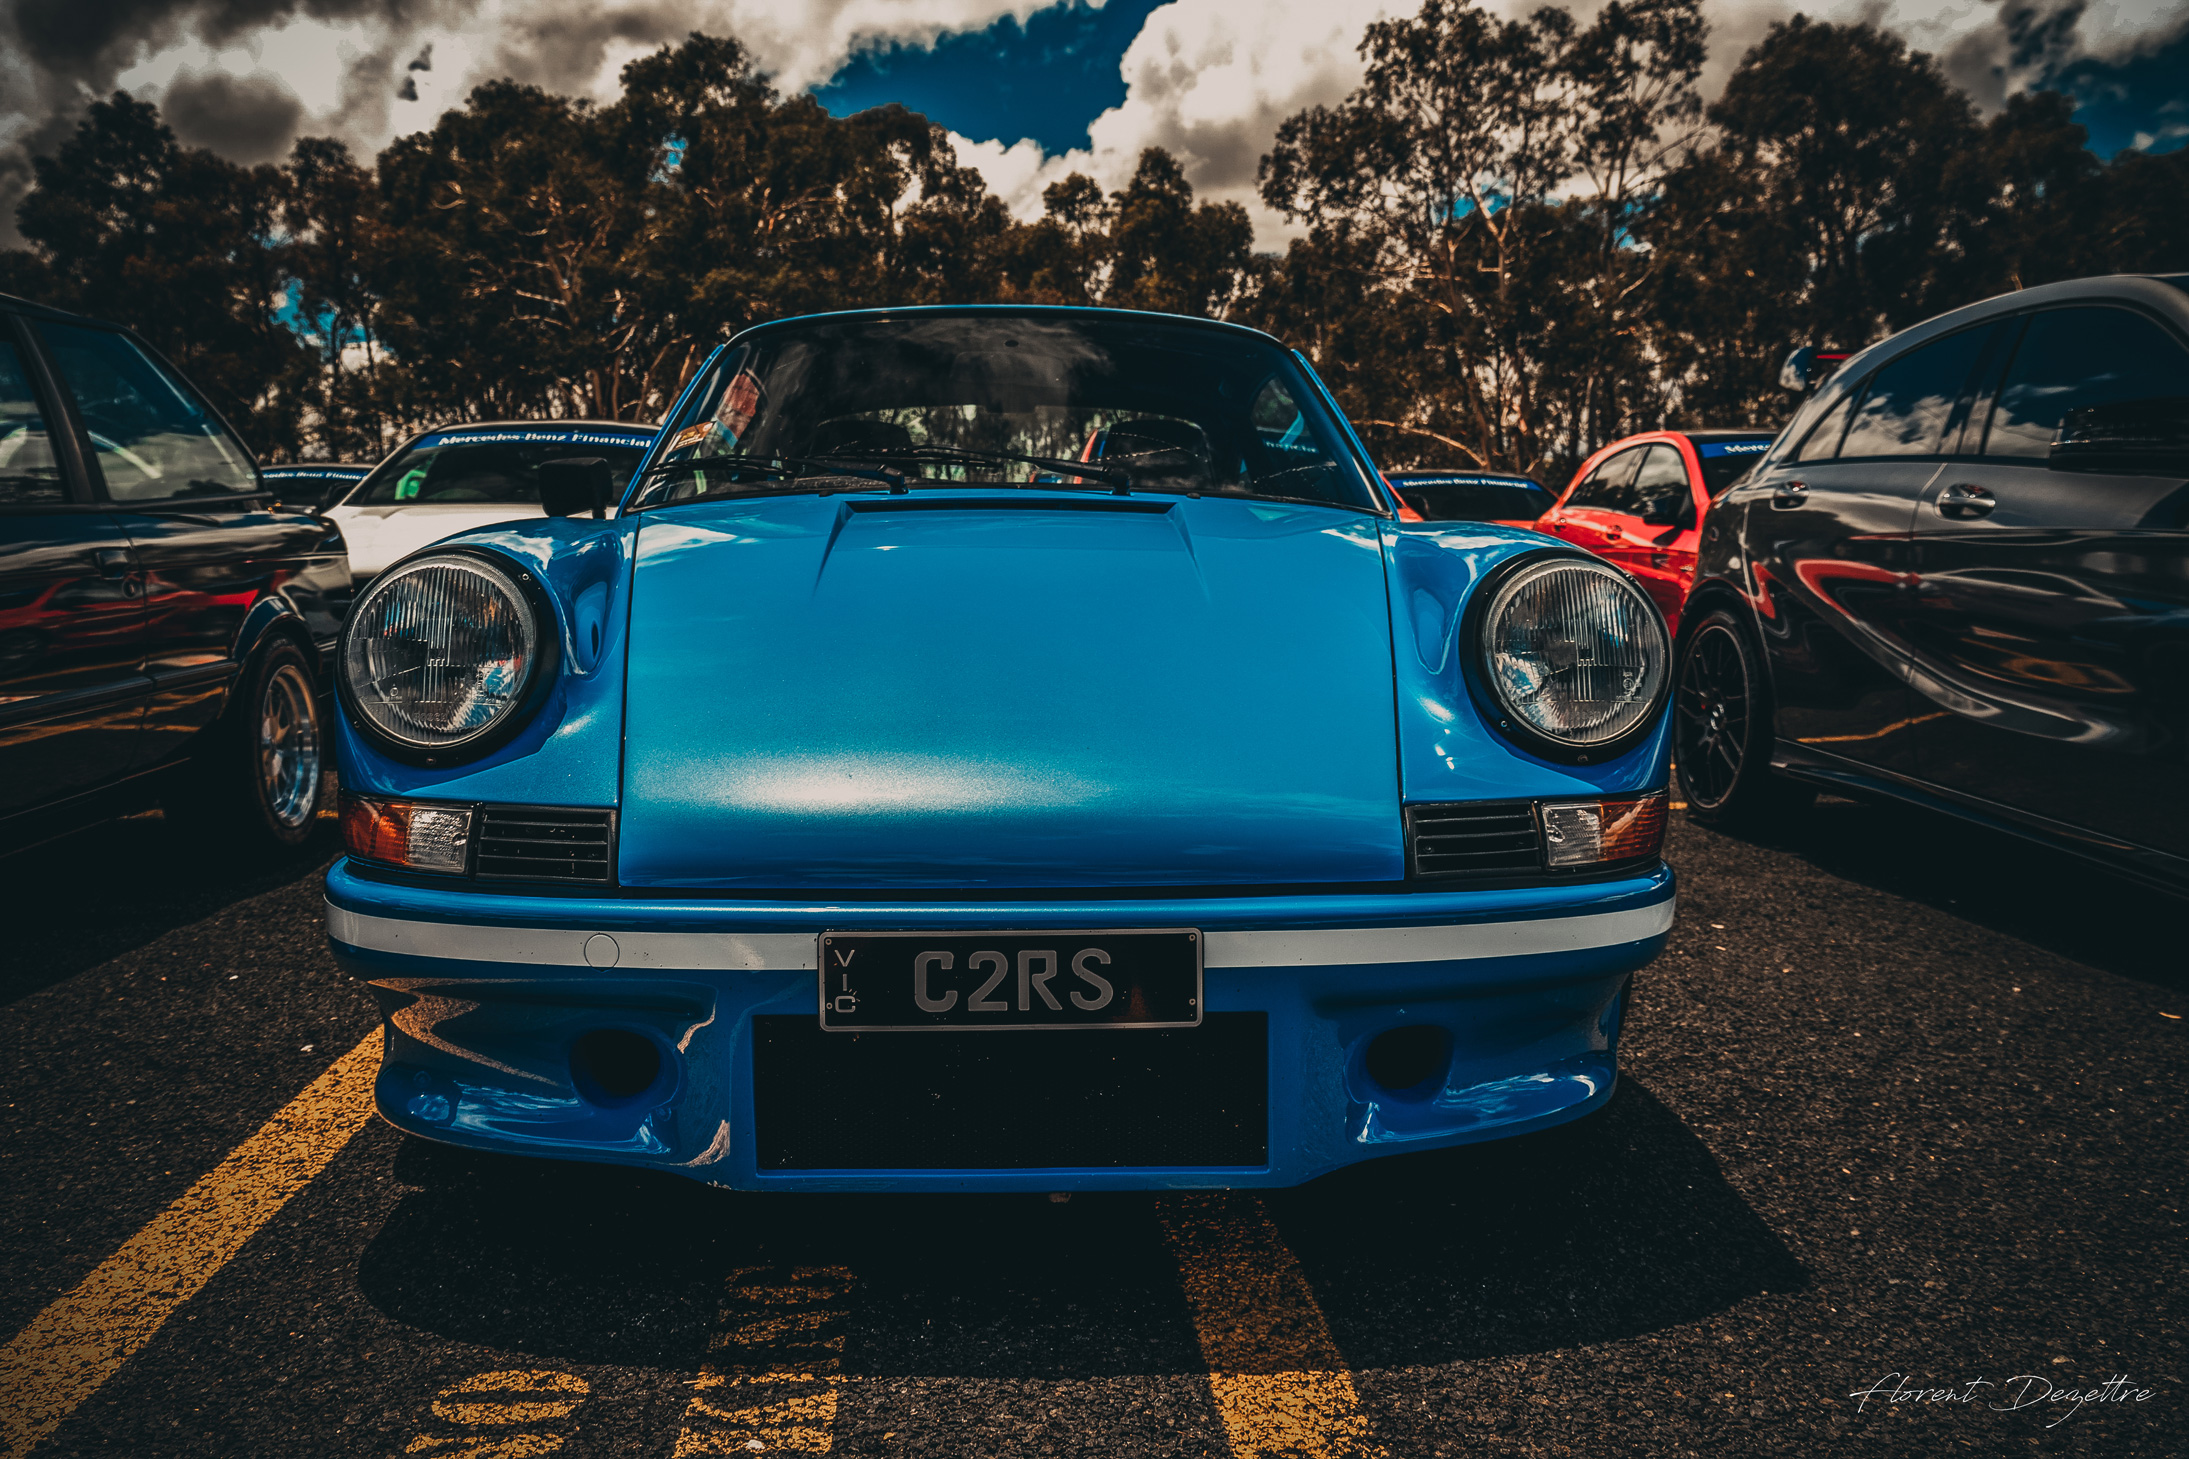 Parked-C2RS